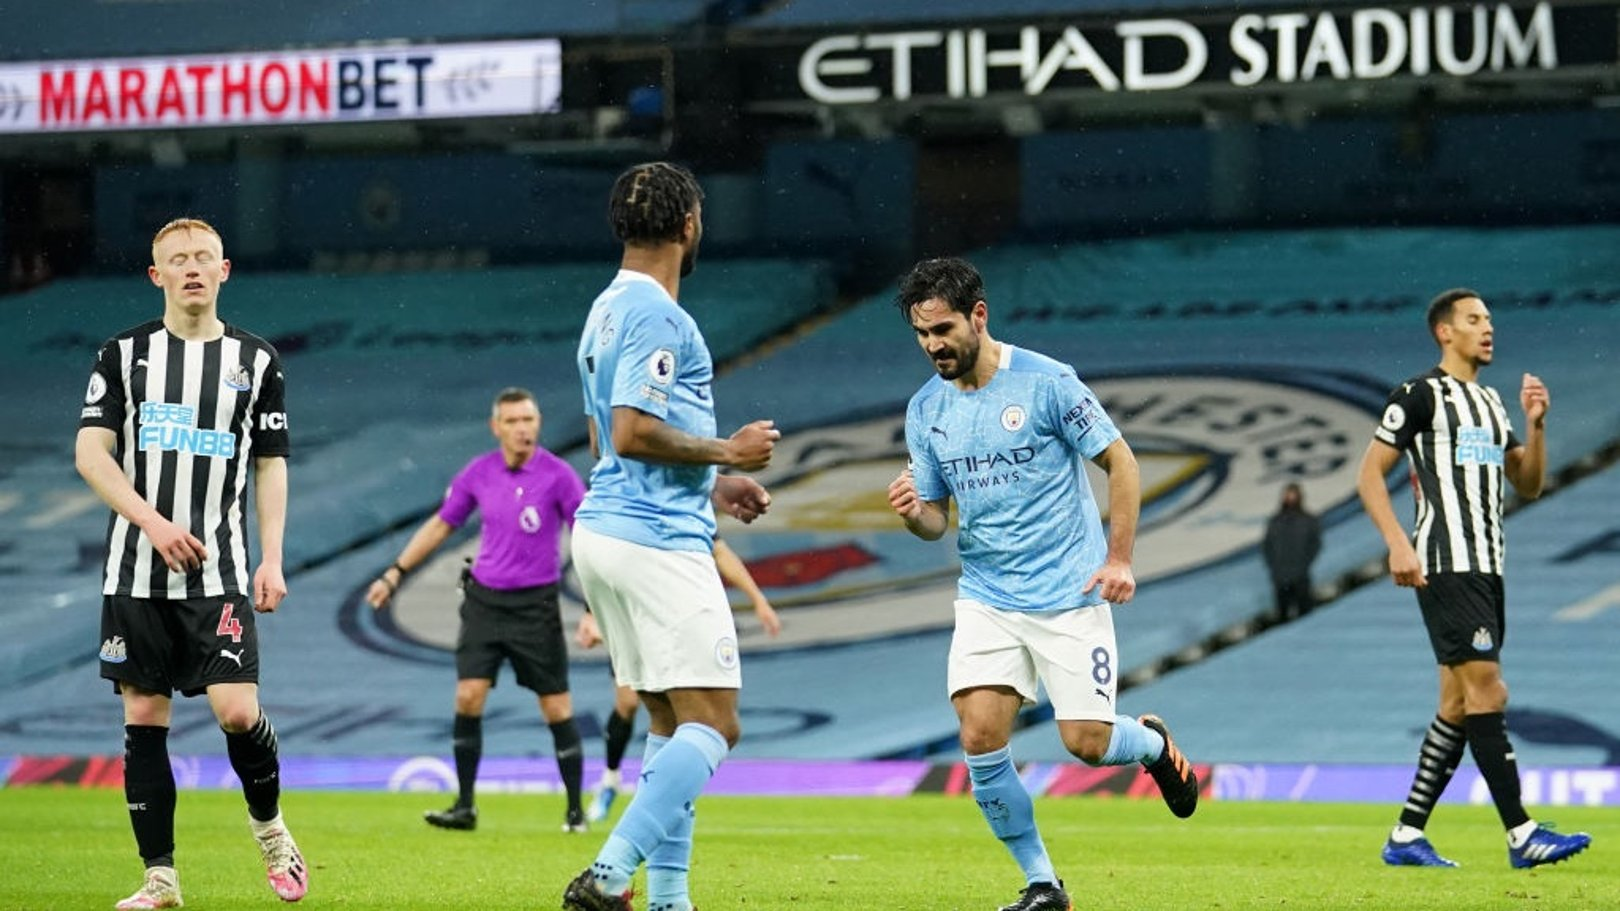 DEJA VU: Gundogan wheels away to celebrate after Sterling's cut-back, the same duo combined in similar fashion against West Brom.